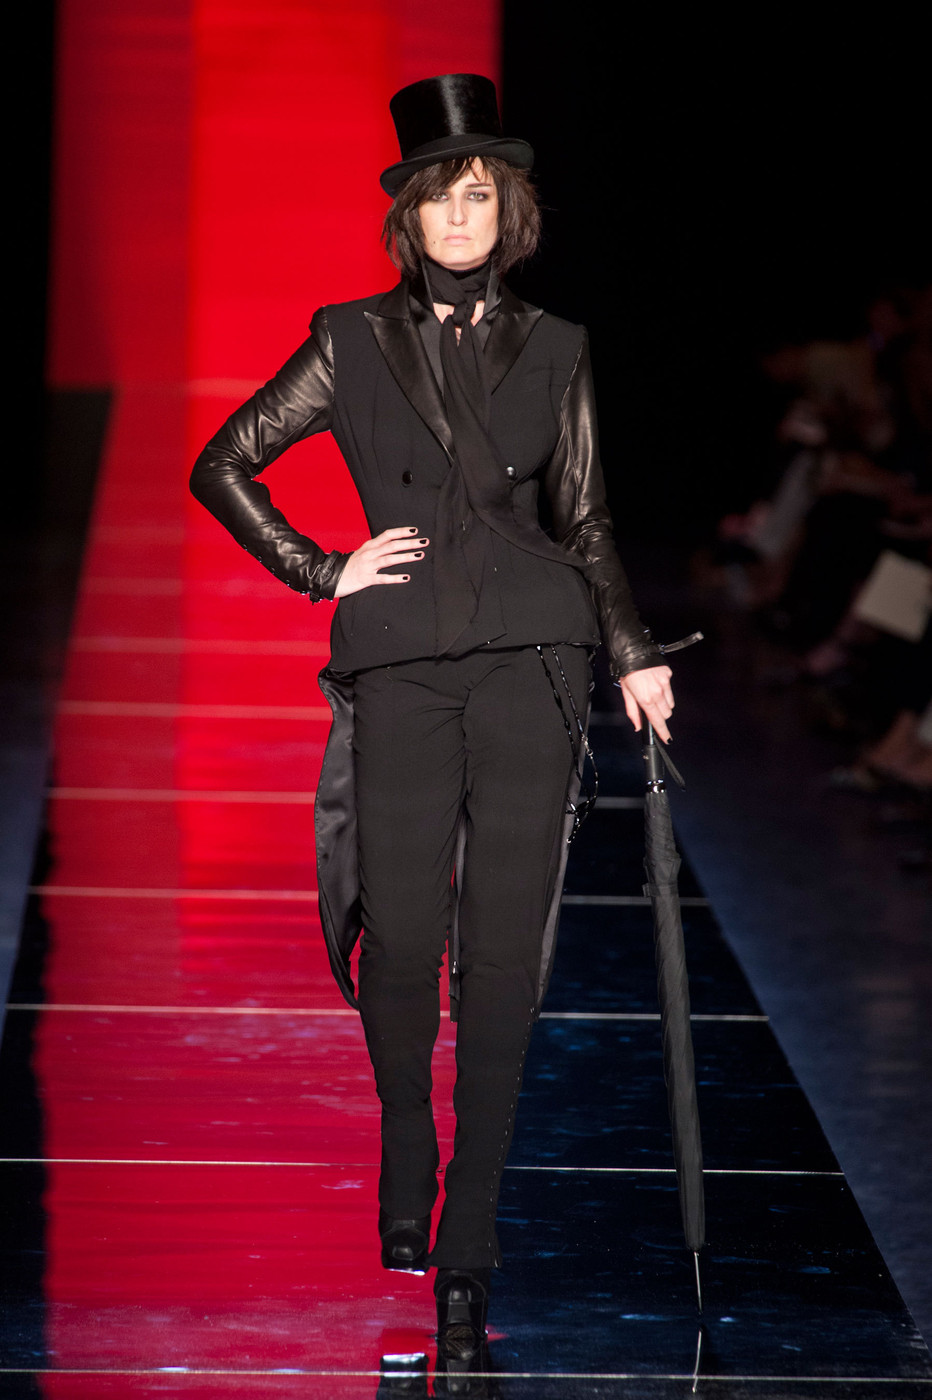 jean paul gaultier at couture fall 2012 livingly. Black Bedroom Furniture Sets. Home Design Ideas